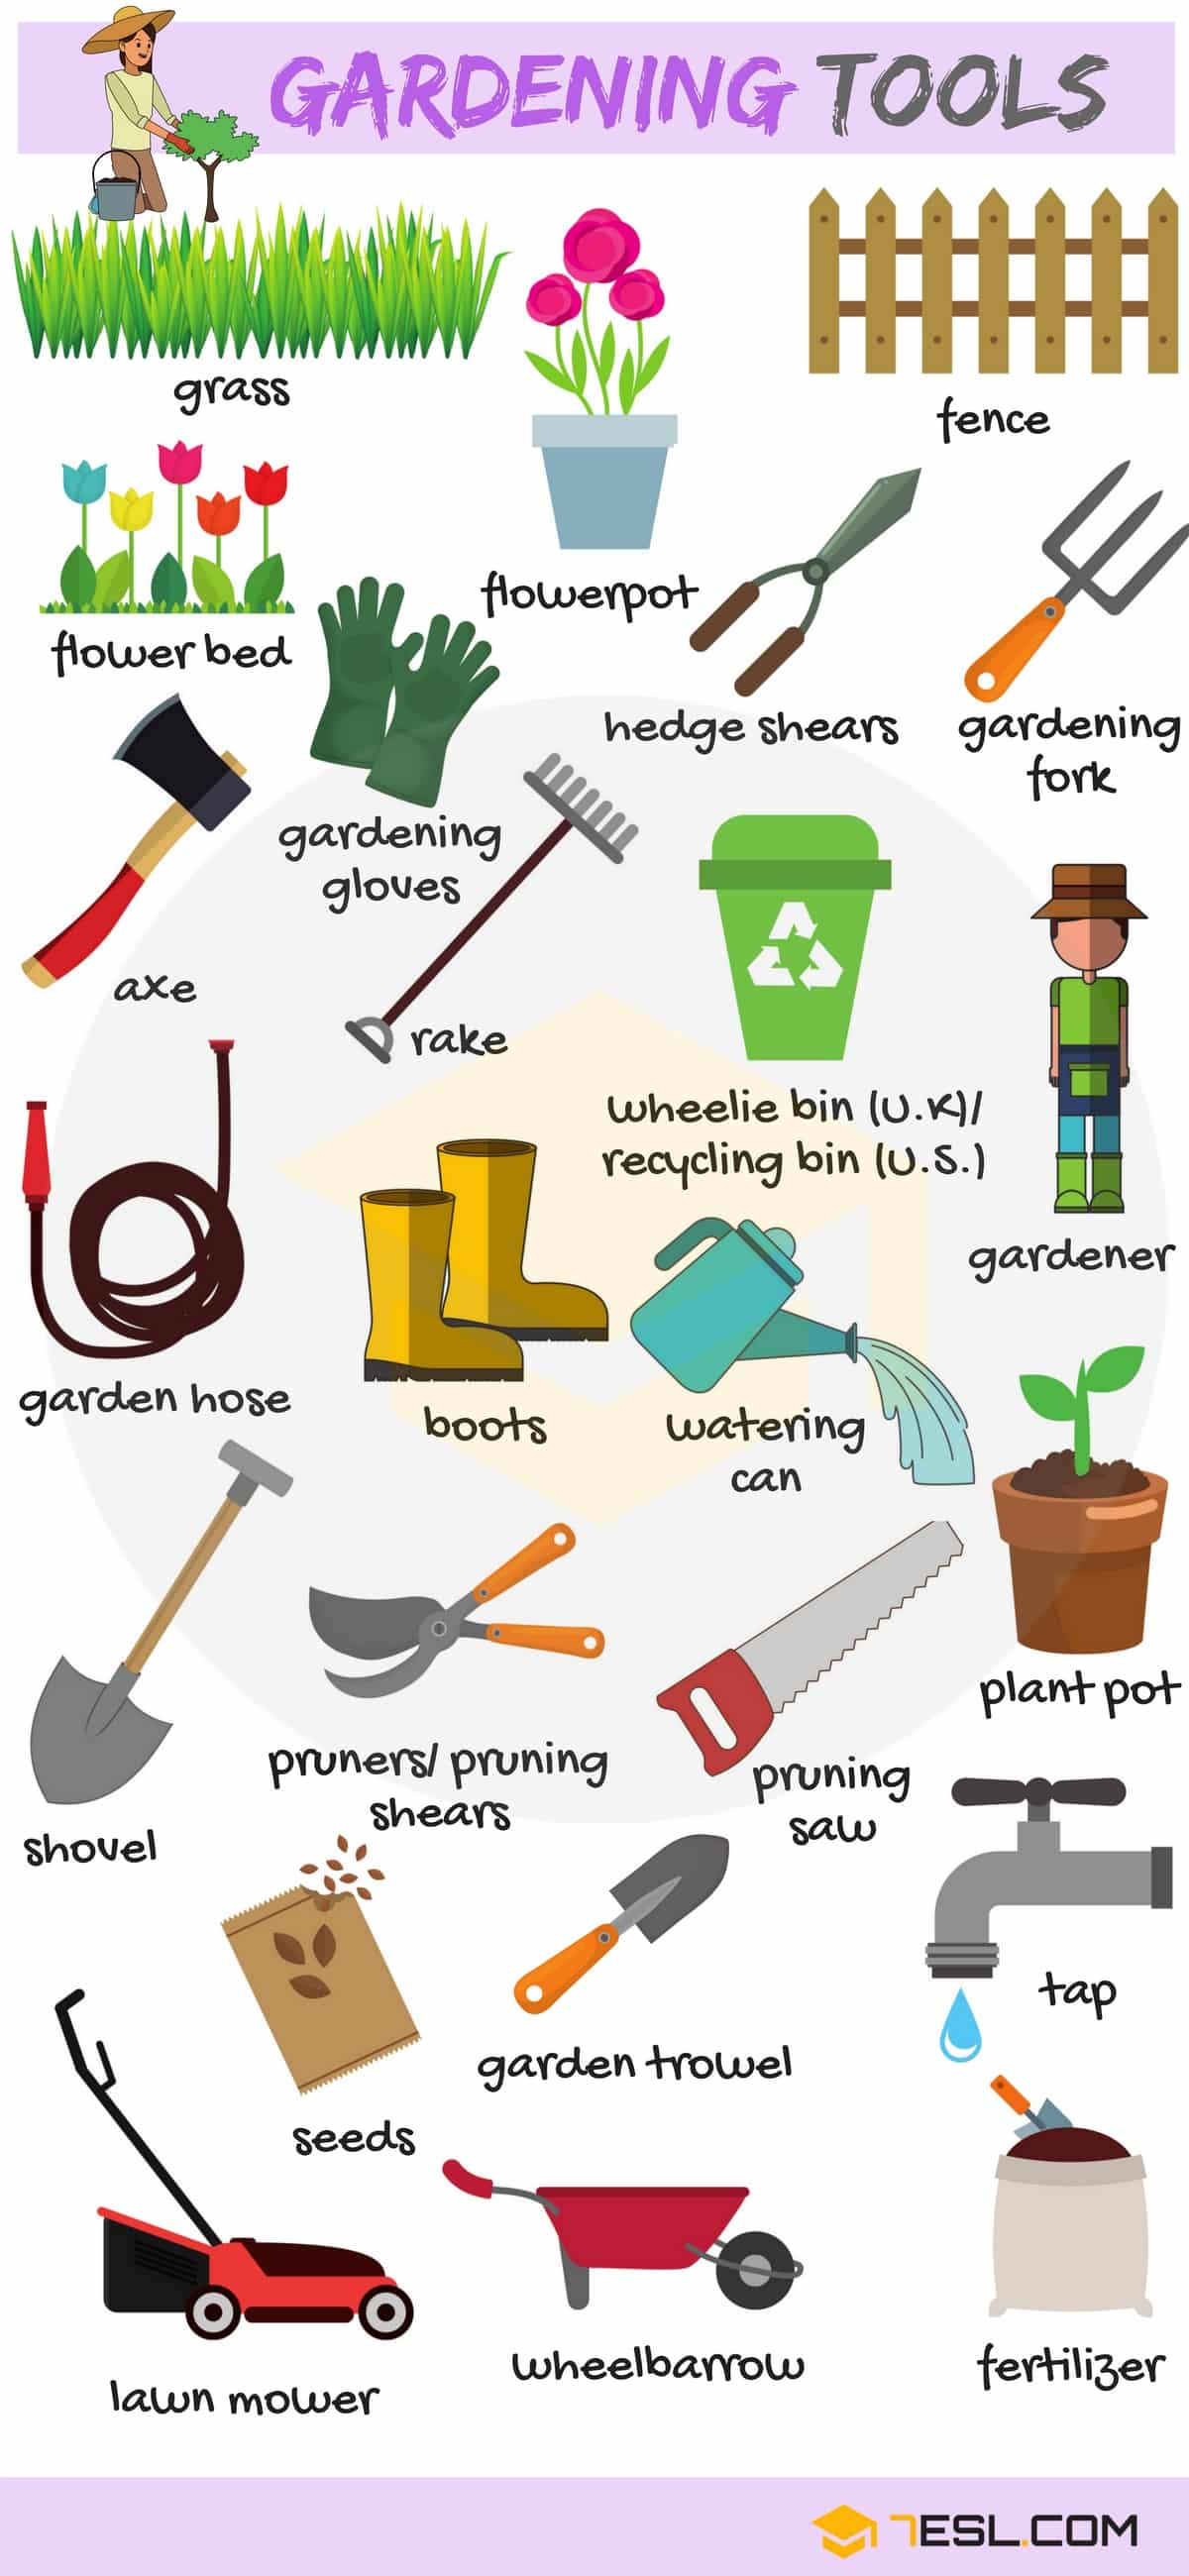 Gardening Tools Names List With Useful Pictures 7 E S L